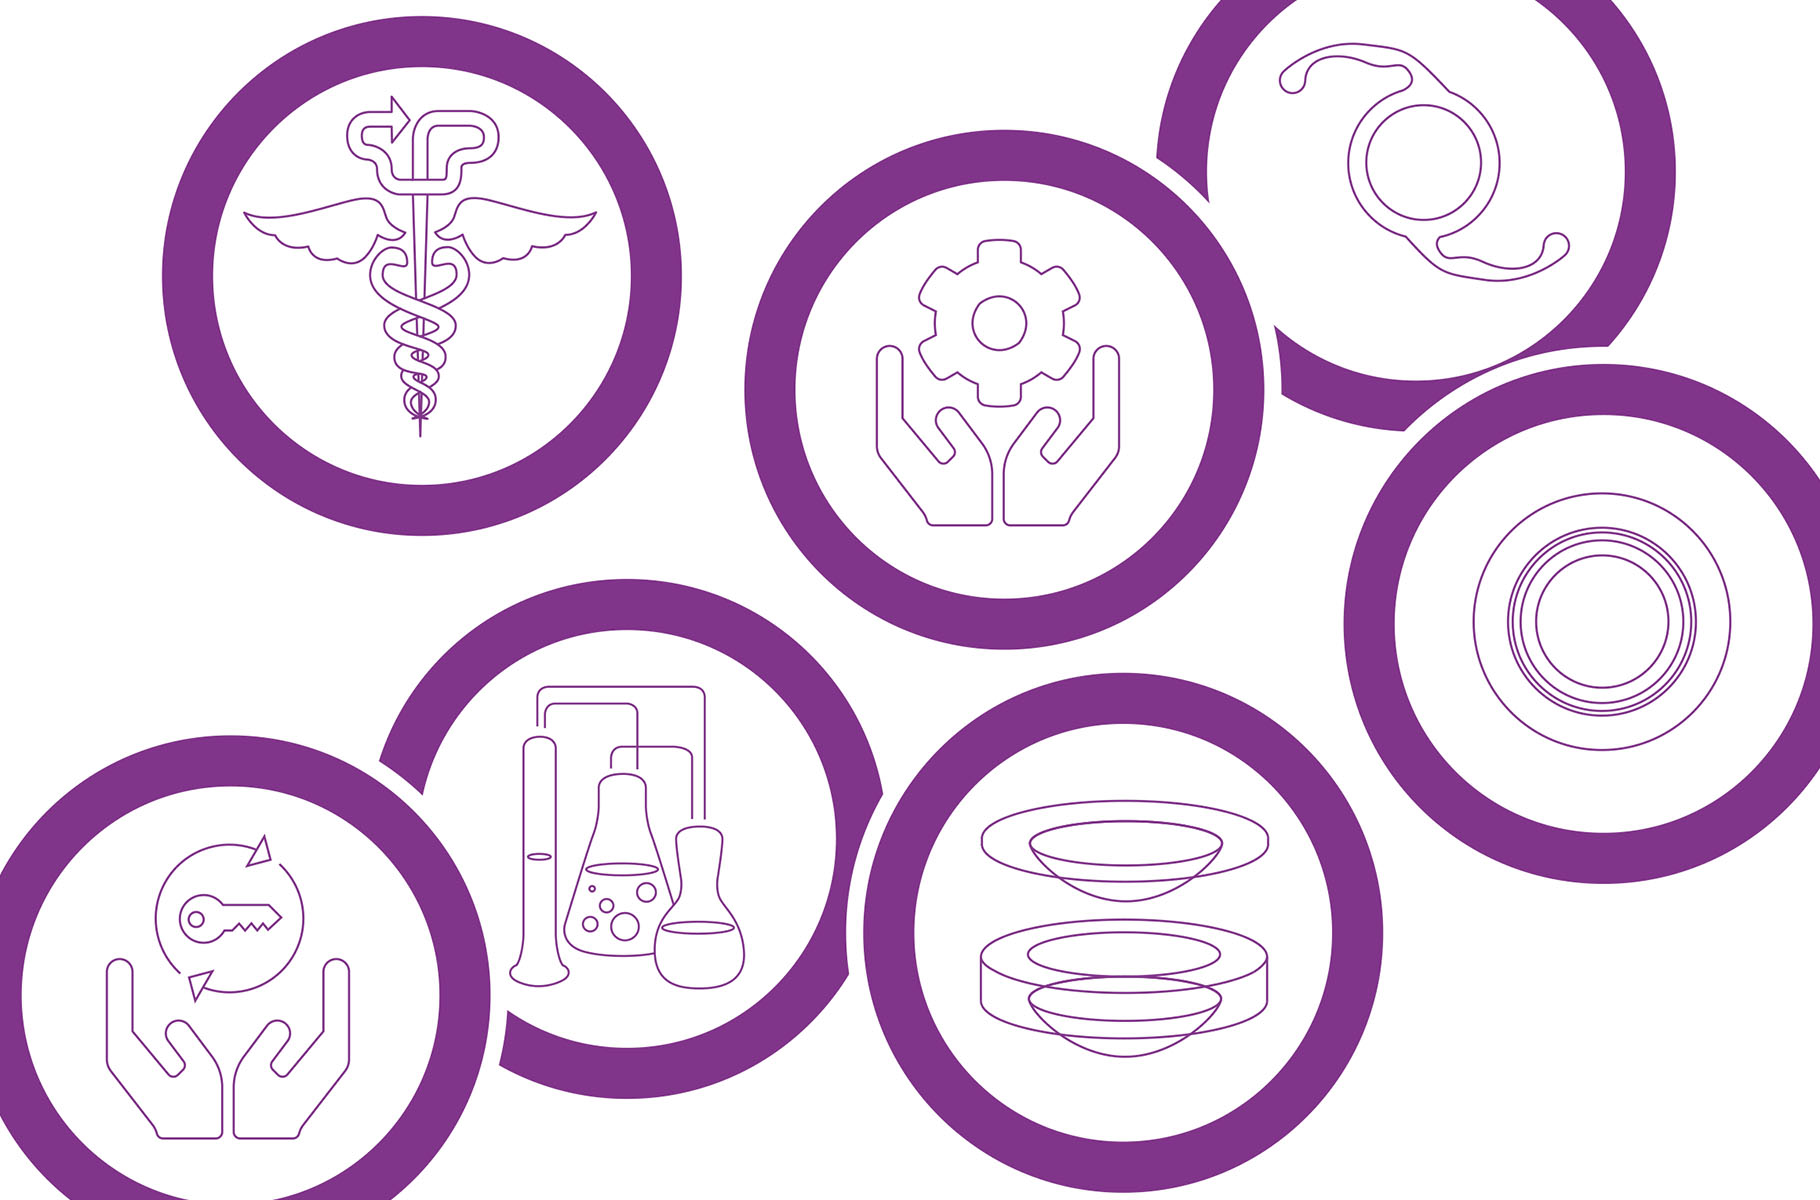 Bespoke iconography designed to identify all services